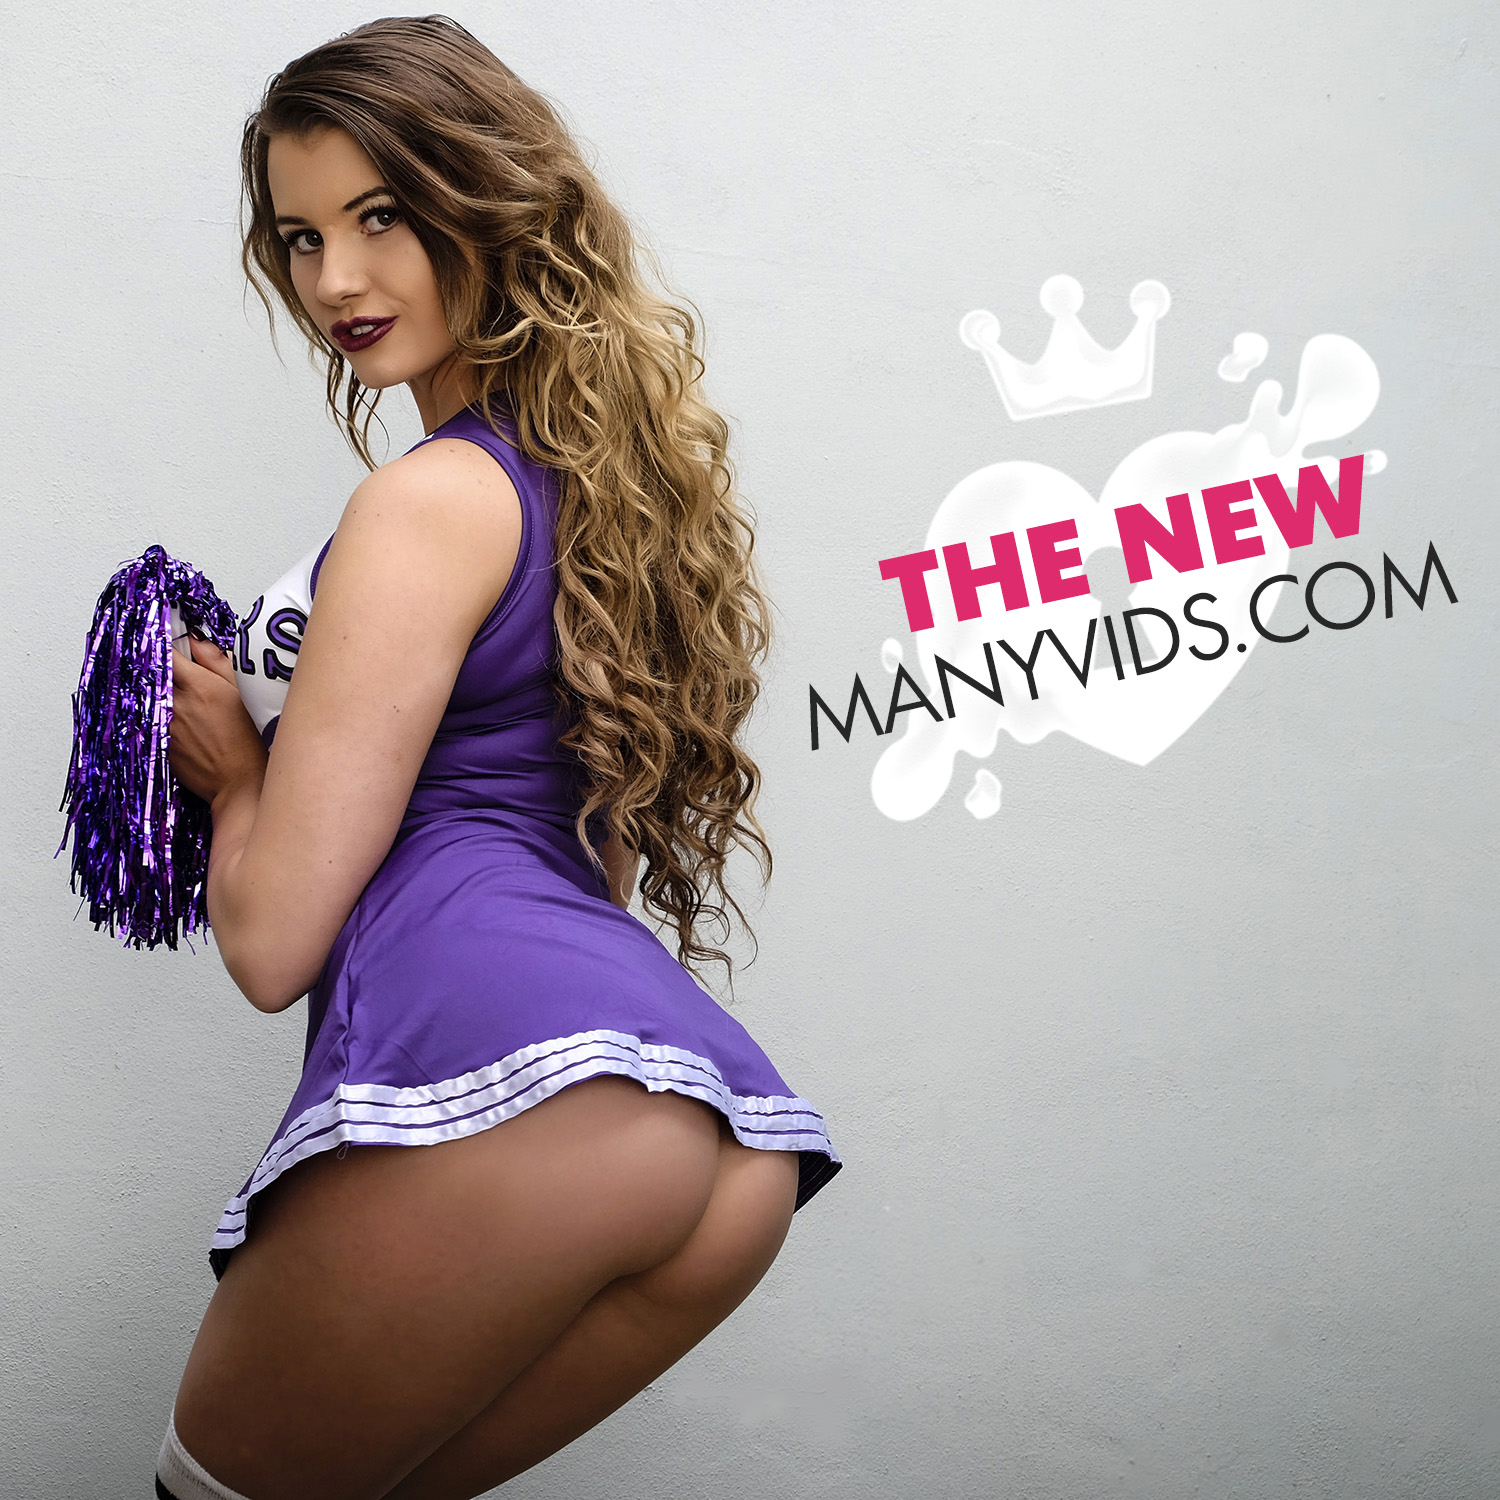 Details On The New And Redesigned Manyvids Site